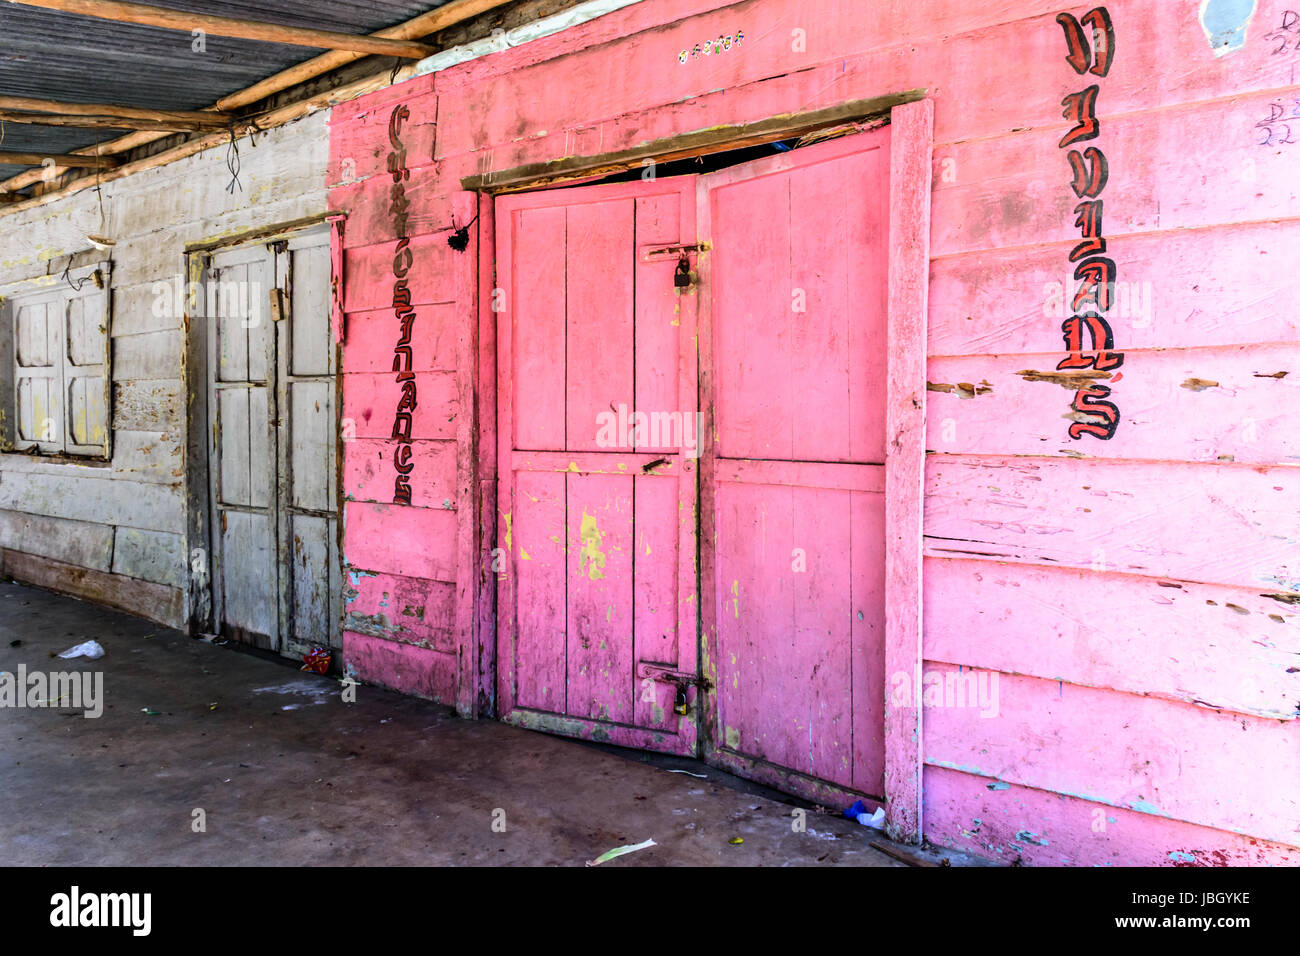 Livingston, Guatemala - August 31, 2016: Padlocked, colorful, wooden building in Caribbean town of Livingston - Stock Image